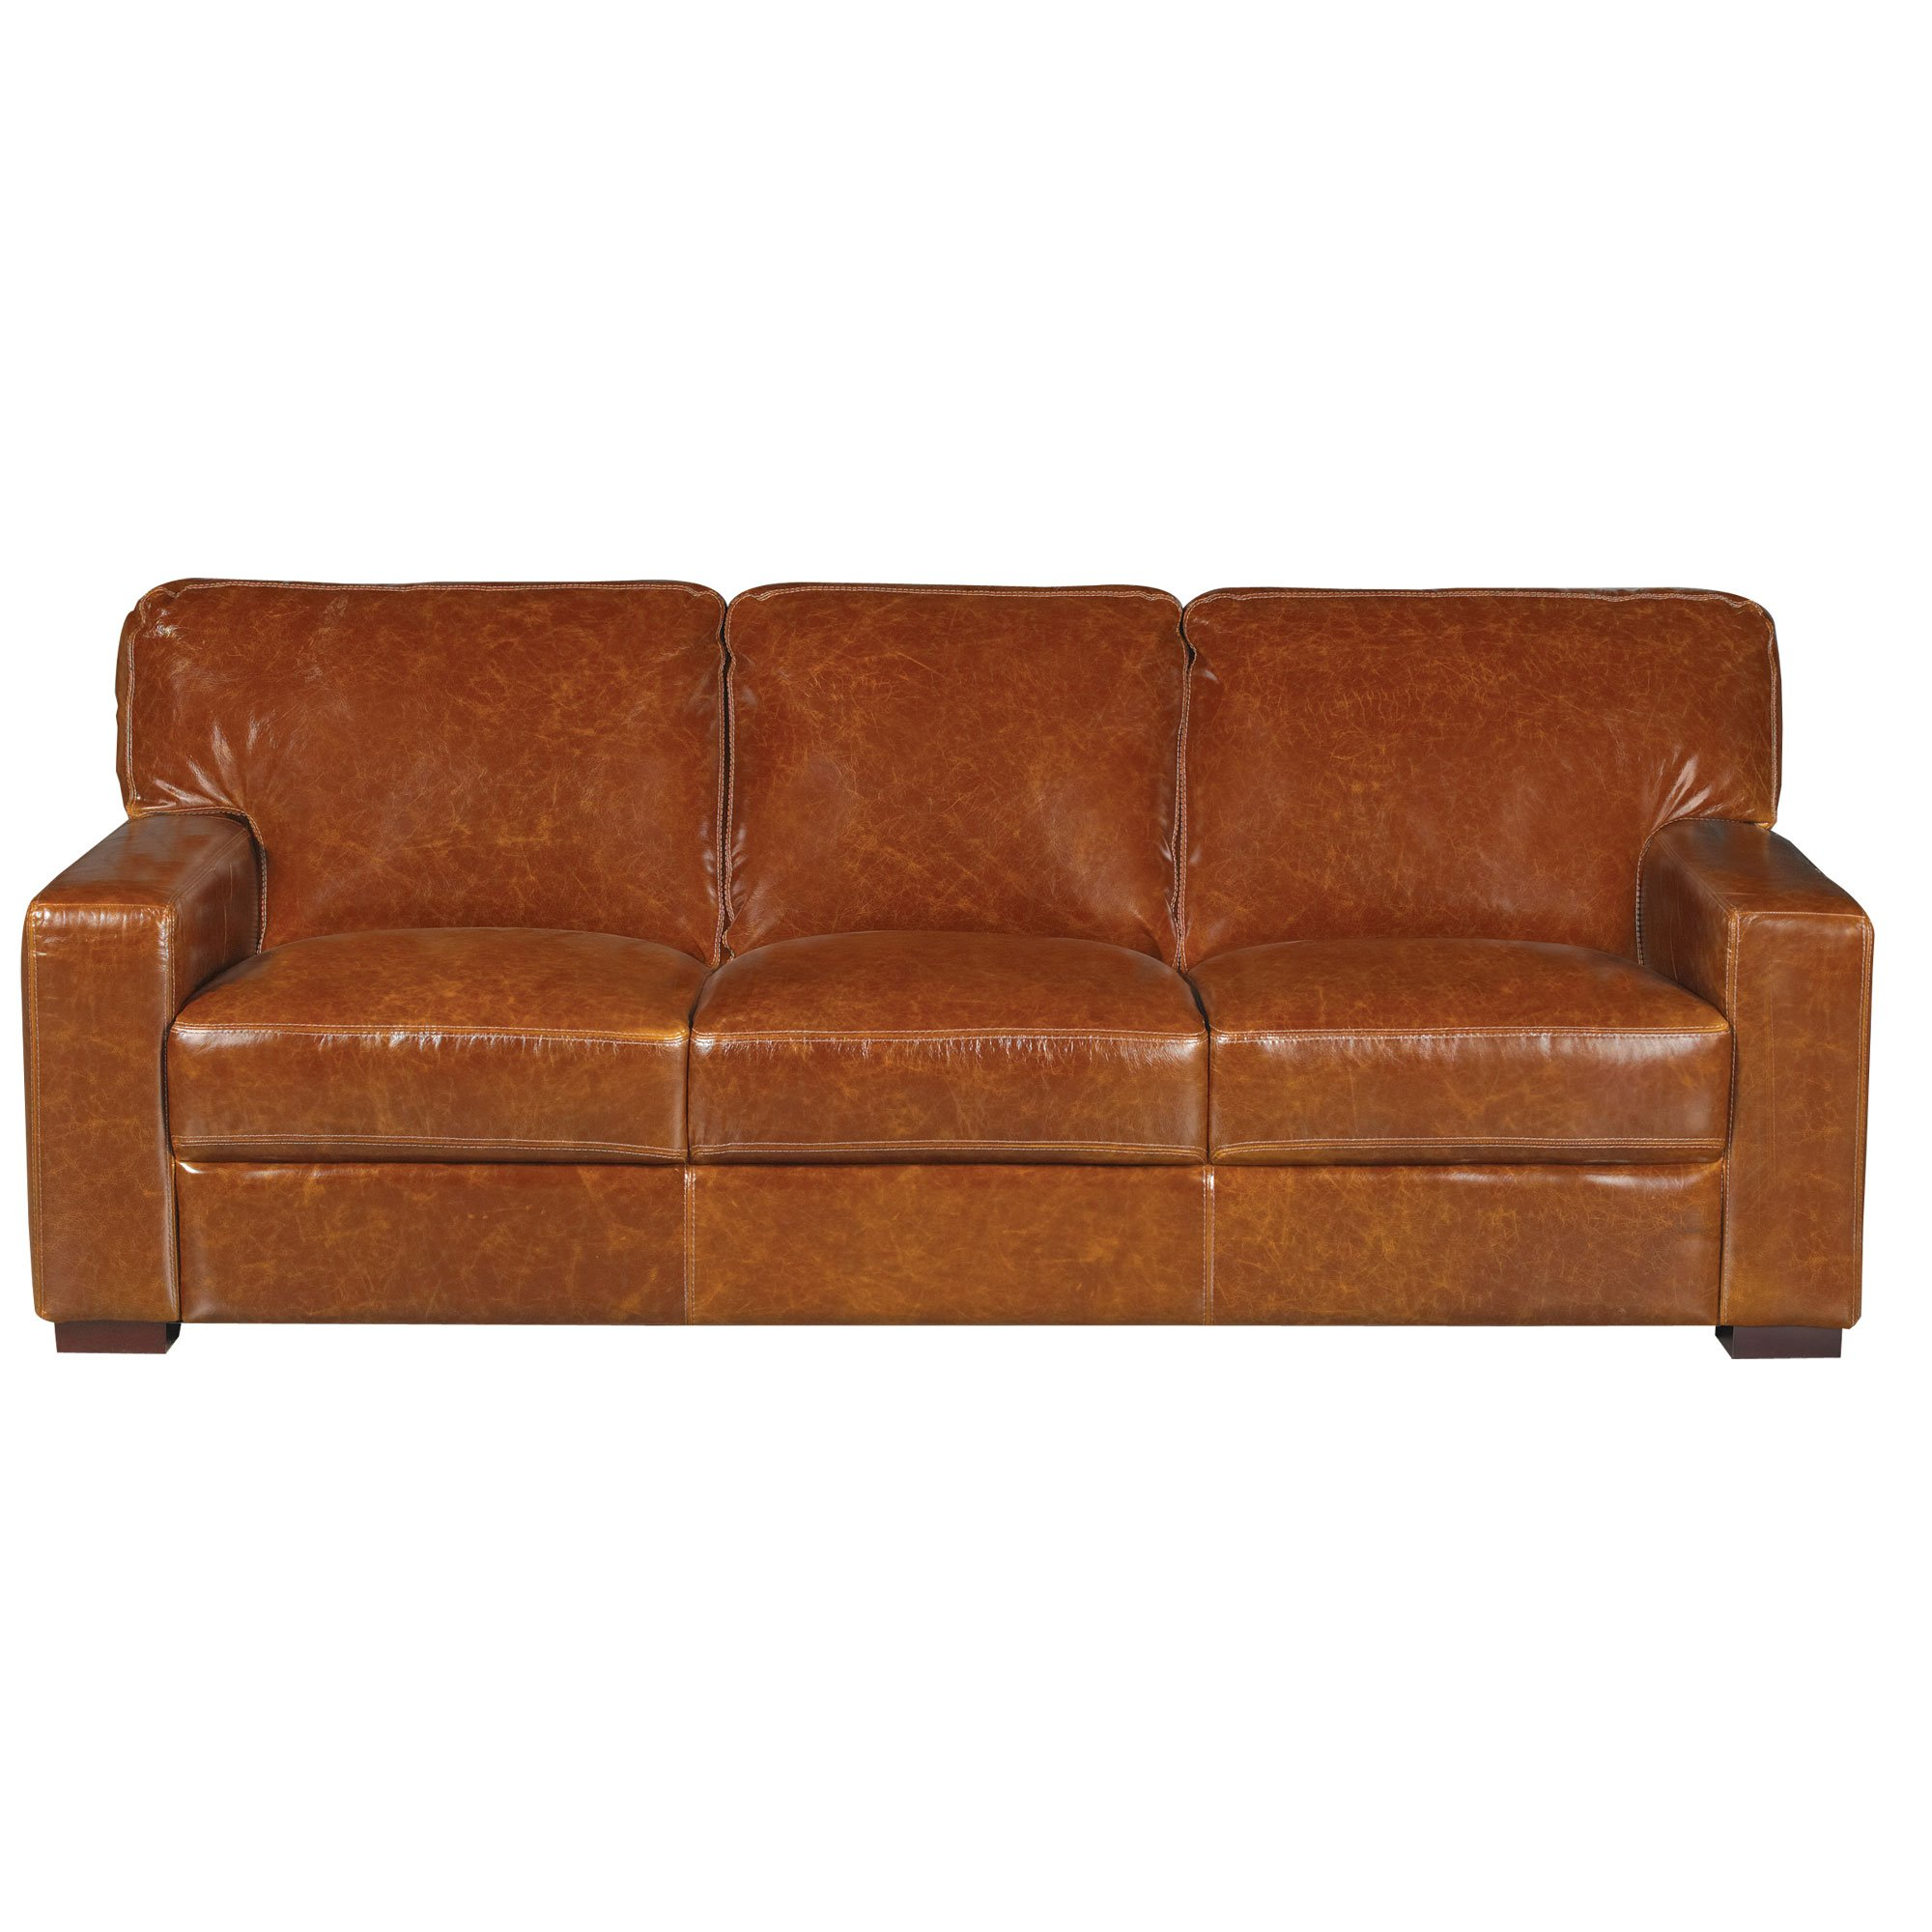 Casual Contemporary Brown Leather Sofa   Downtown   RC Willey Furniture  Store